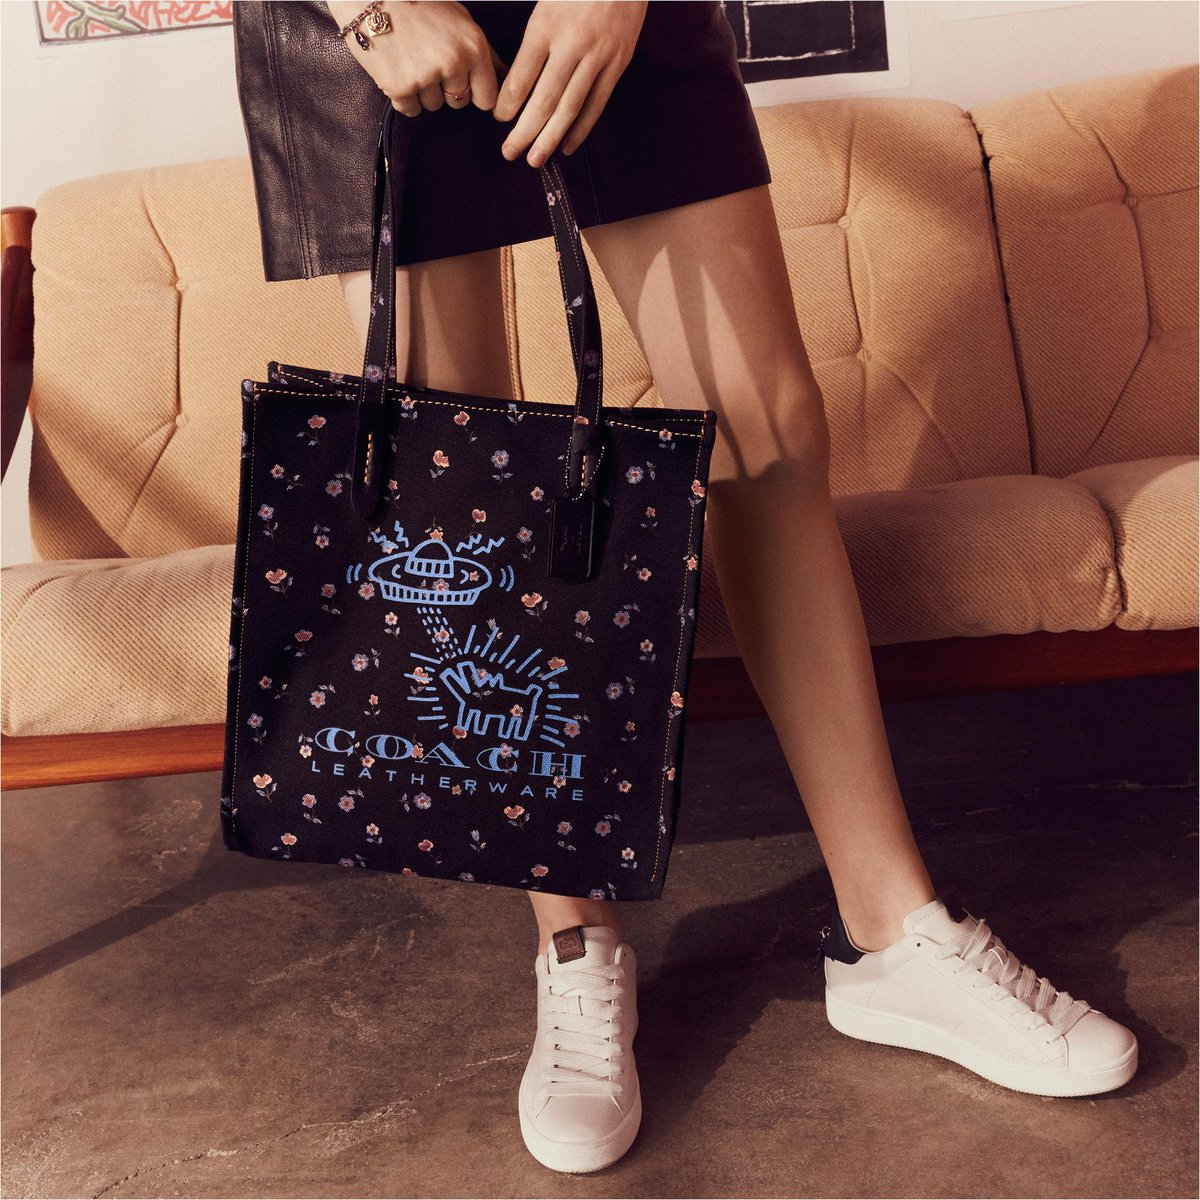 👽 Grounded yet otherwordly. #KeithHaring's UFO Dog lifts off on spring's roomy floral canvas tote. #CoachxKeithHaring #CoachNY https://t.co/qlsm83294f